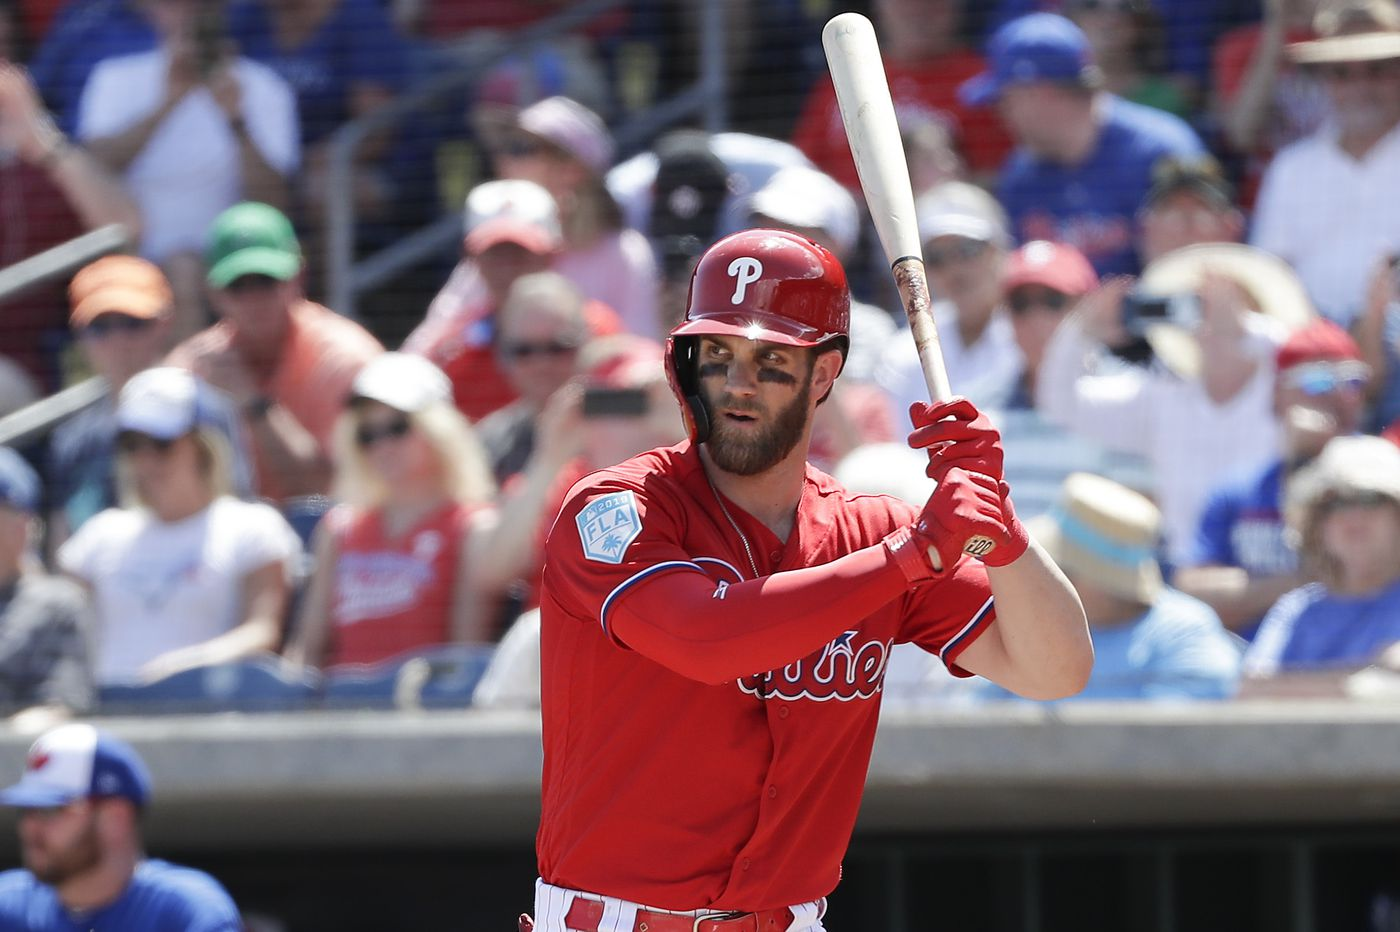 Phillies star Bryce Harper back in swing with first two spring-training home runs